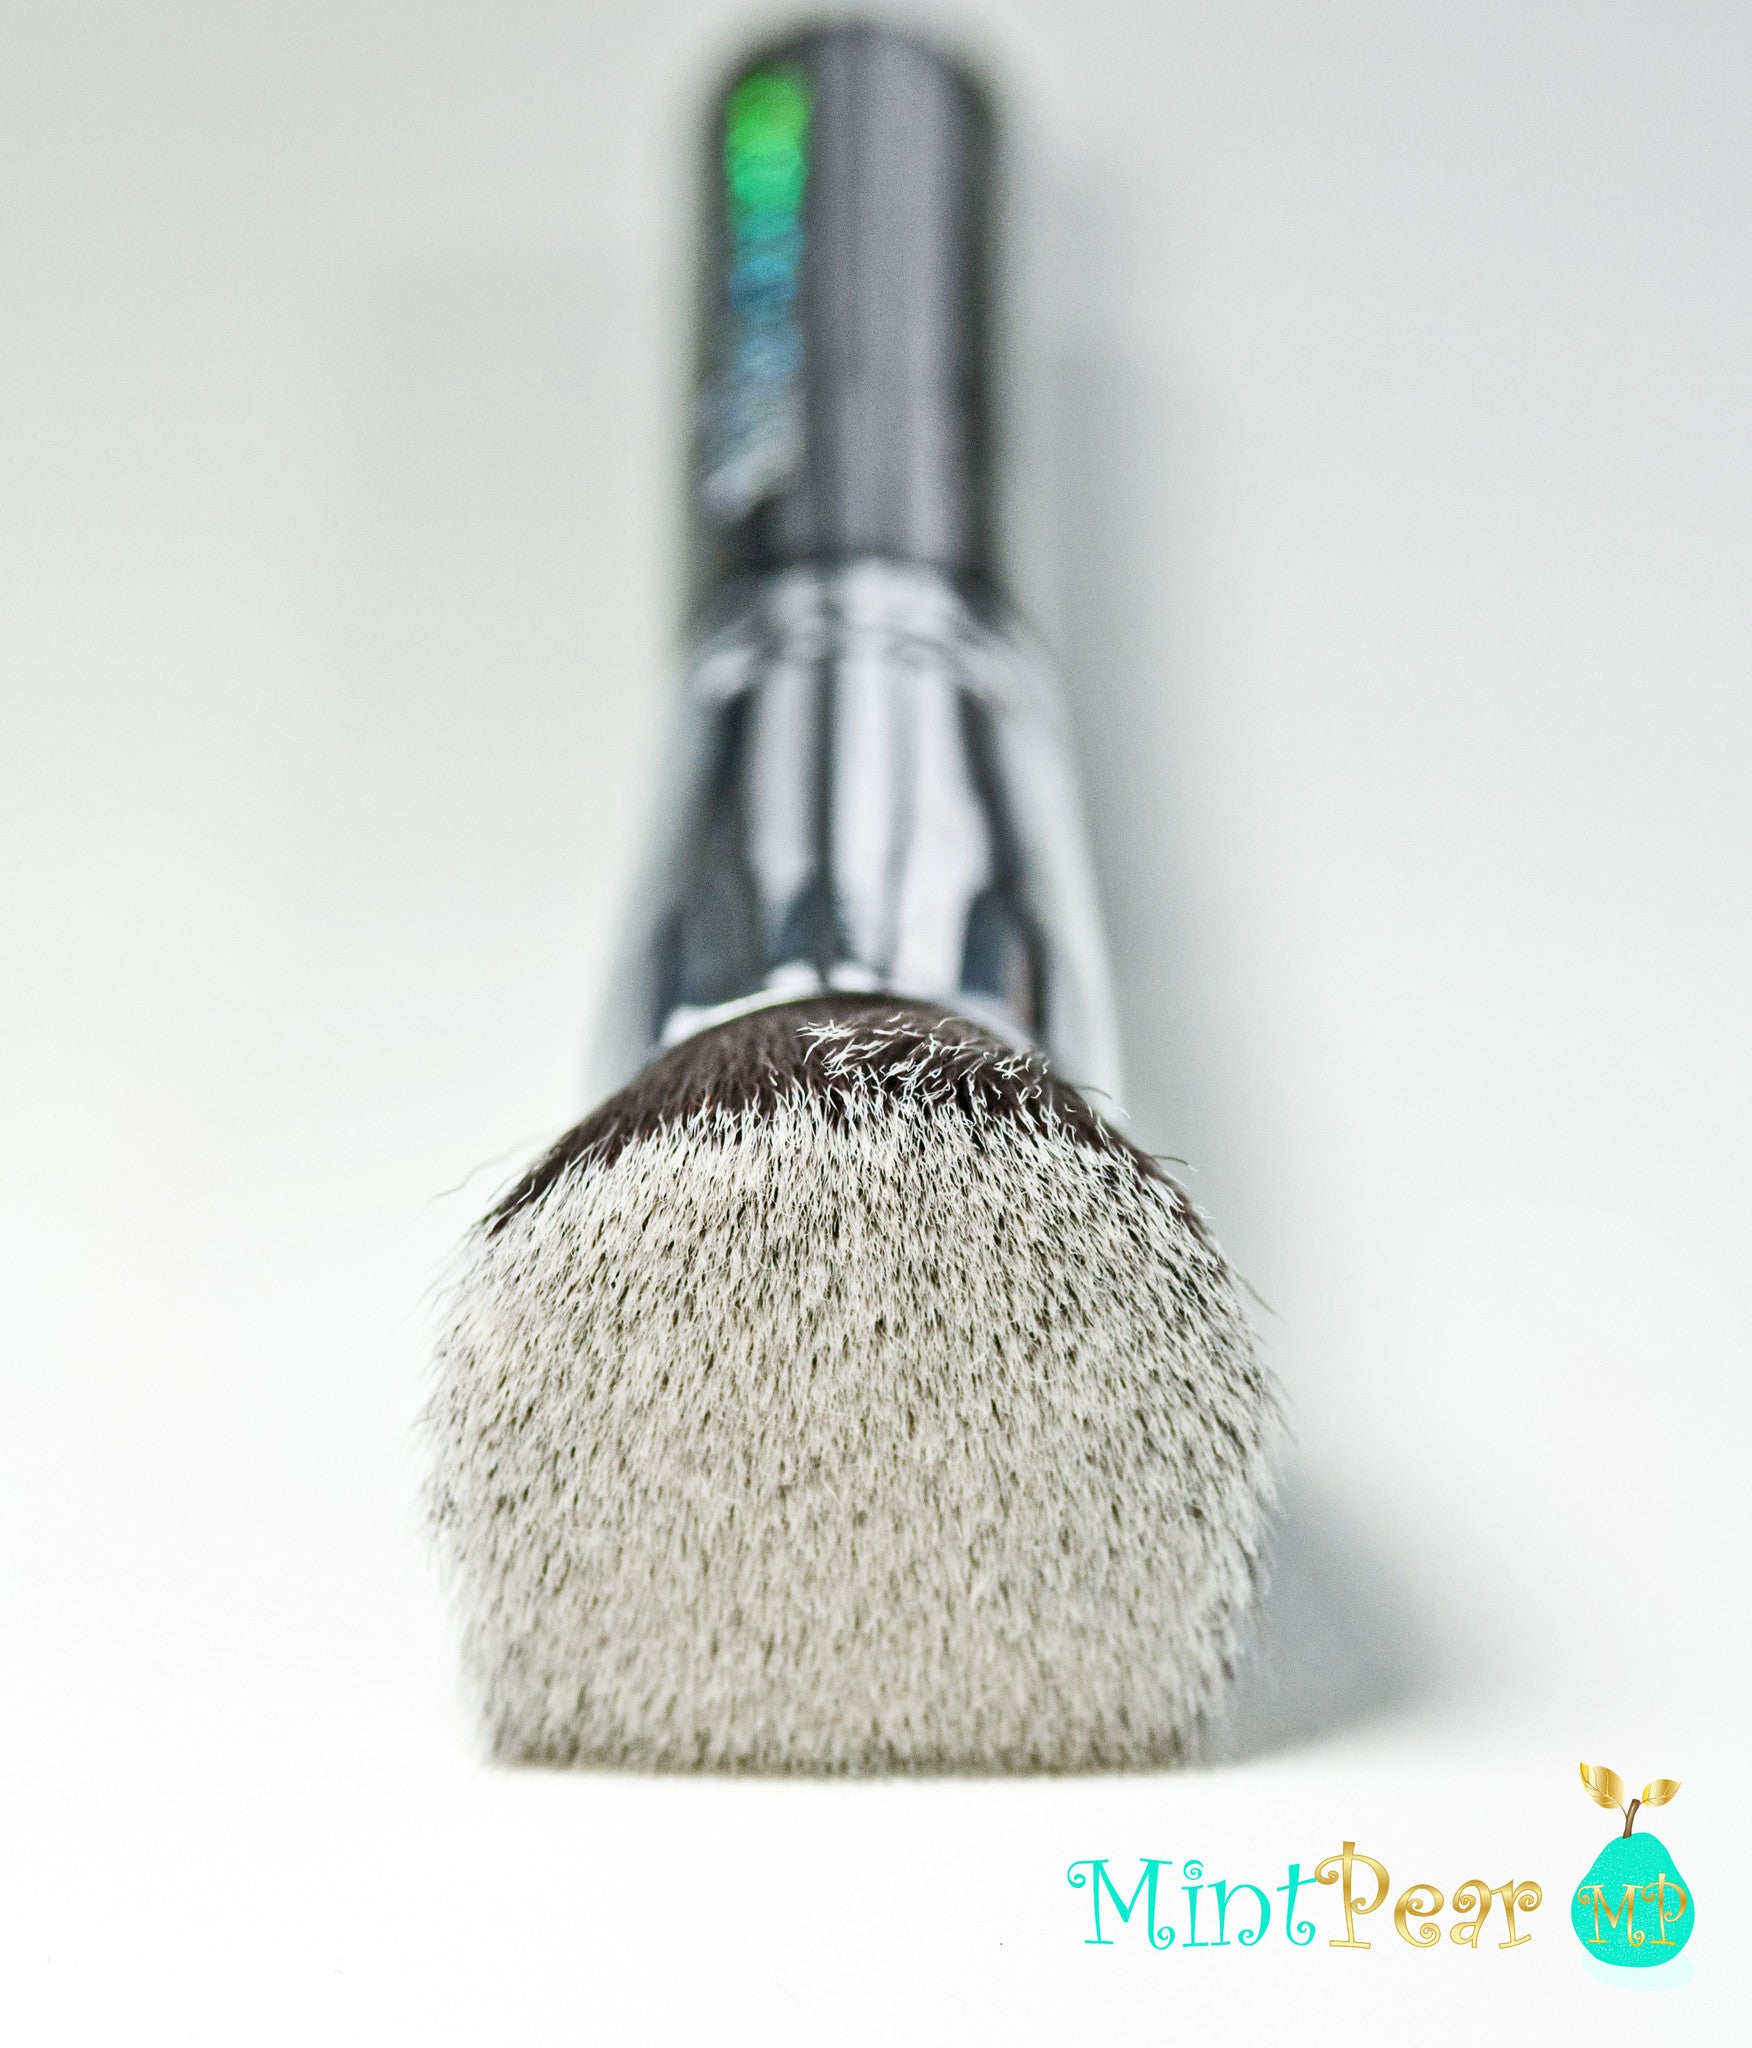 HOW TO APPLY FOUNDATION USING A FLAT TOP KABUKI FOUNDATION BRUSH